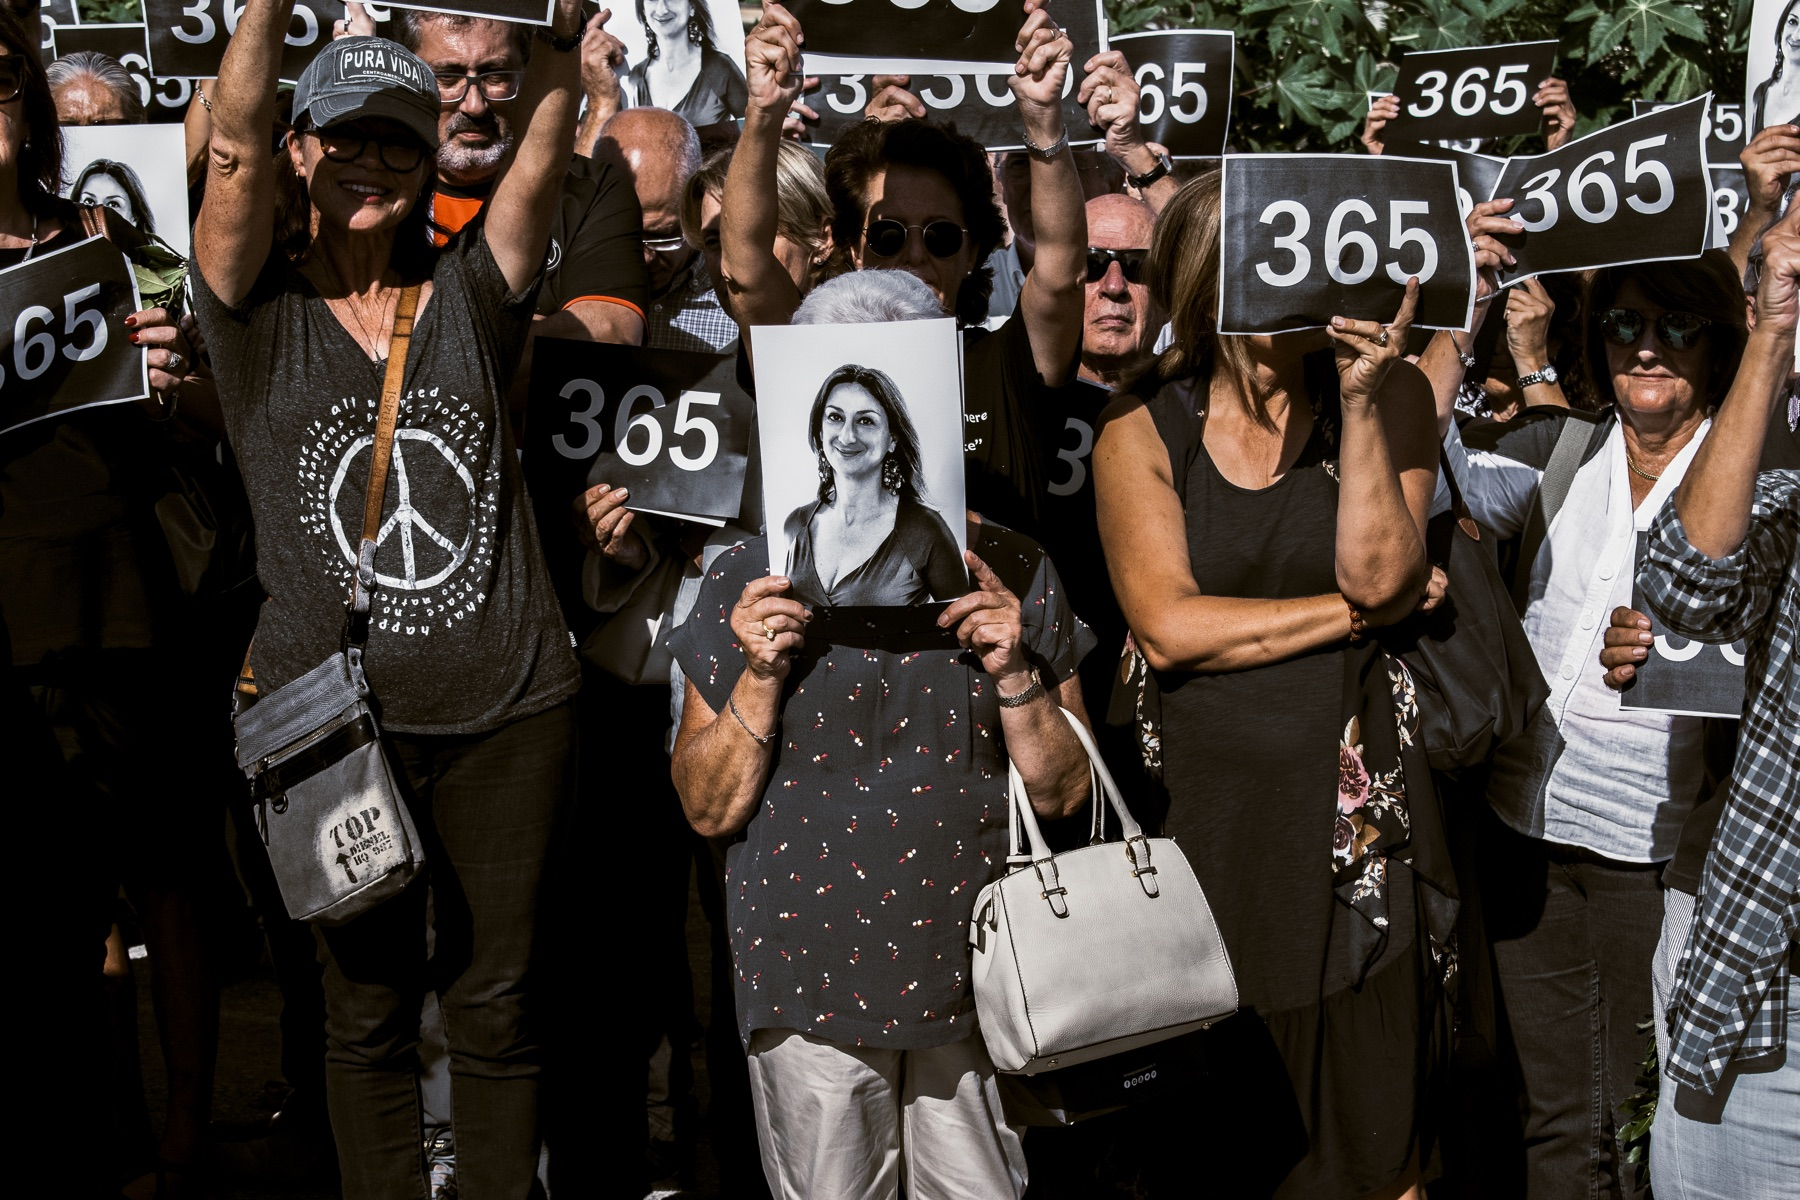 Protestors hold up photos of Daphne Caruana Galizia during a march on the first anniversary of her assassination.